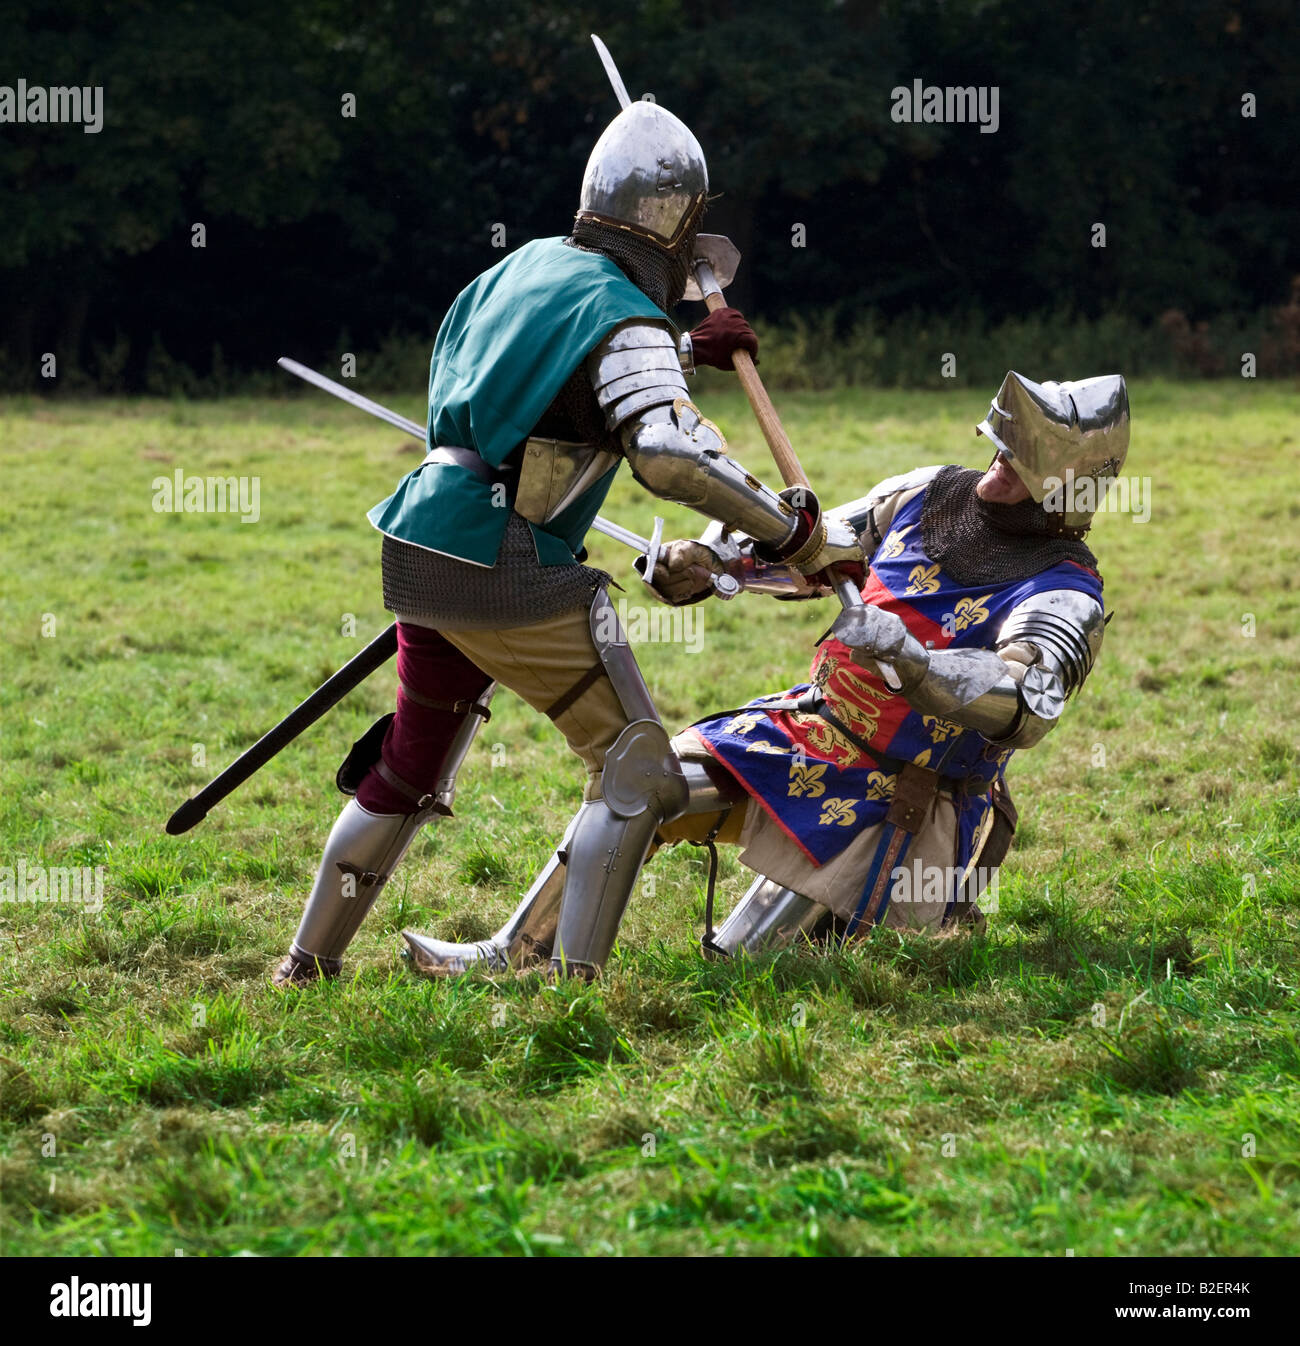 Medieval Knights in mortal combat - a re-enactment. For Editorial Use Only - Stock Image